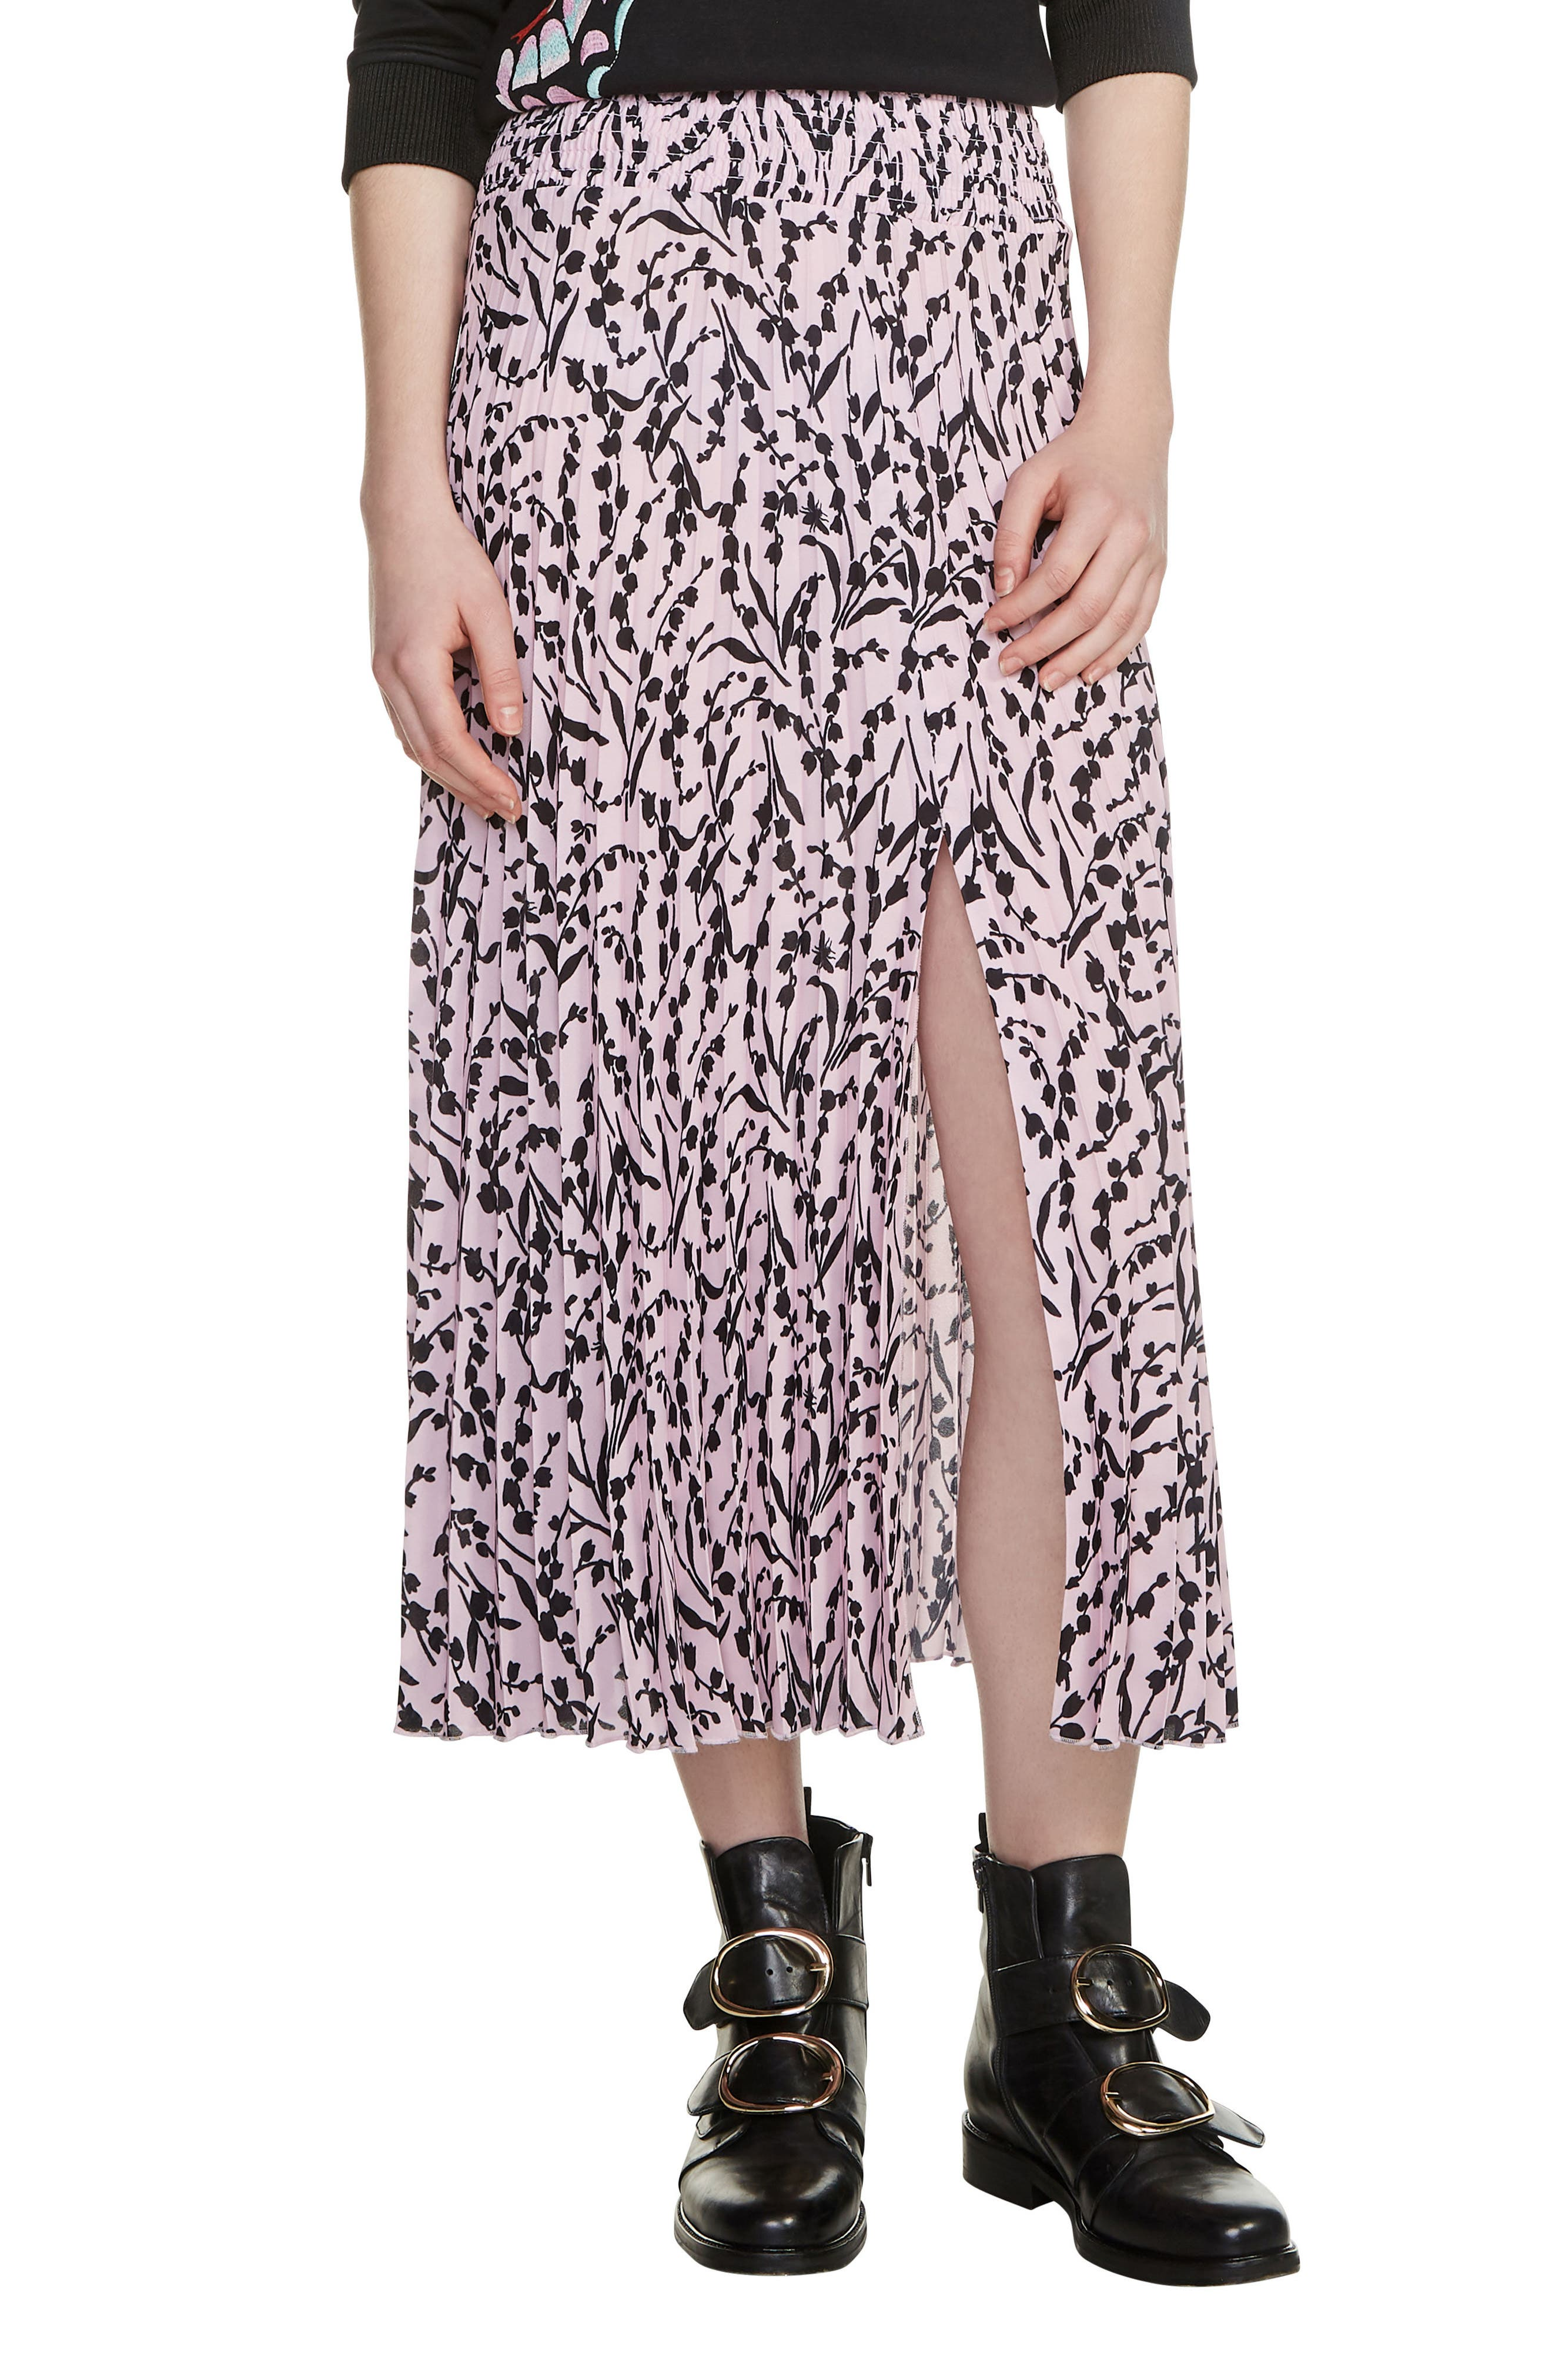 Javina Pleated Midi Skirt,                             Main thumbnail 1, color,